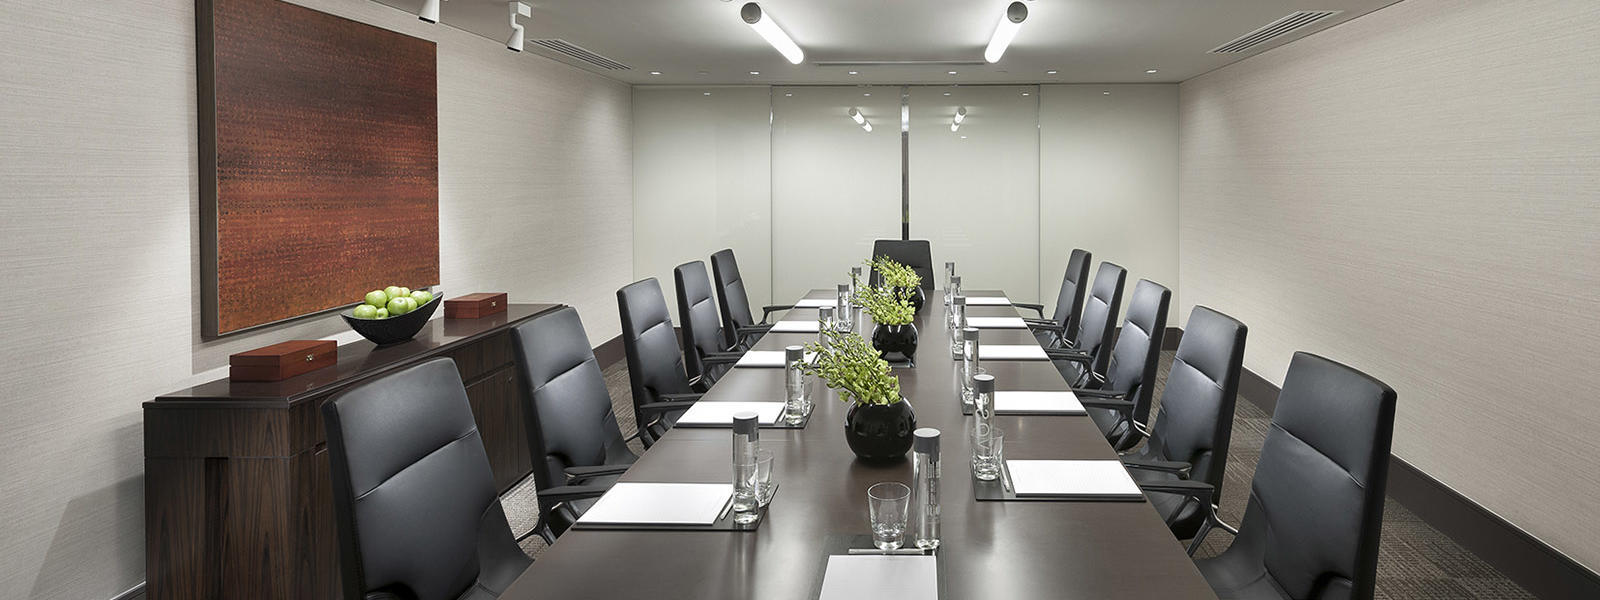 The Office at Crown Metropol Meeting rooms at Crown Hotel Perth